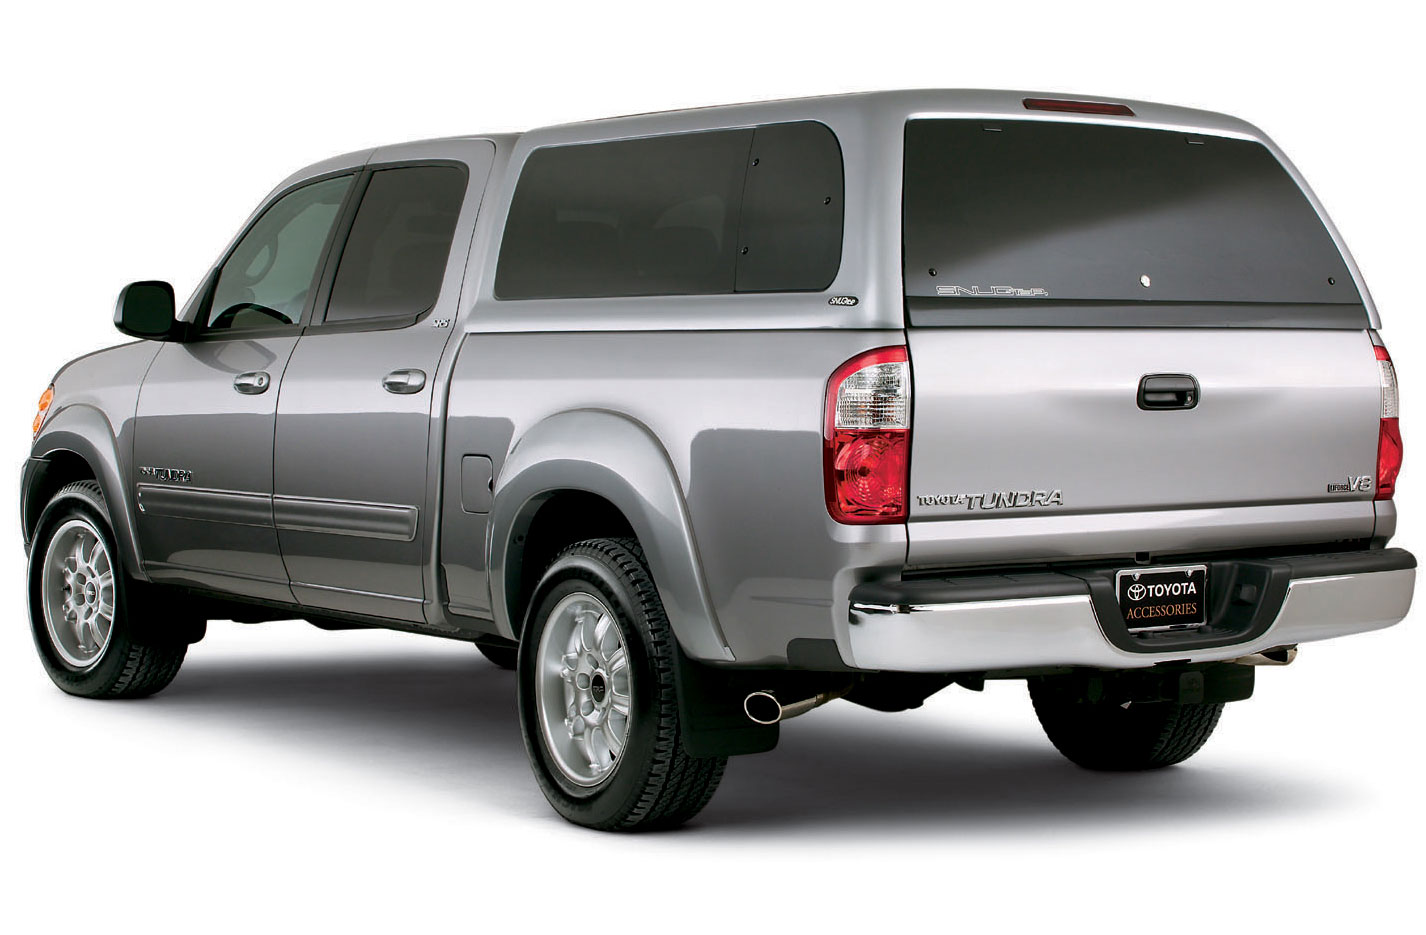 Snugtop Super Sport Truck Caps For 2005 Toyota Tacoma And Tundra Ford F150 4 9l Engine Diagram Tundrasnugtop Cap The